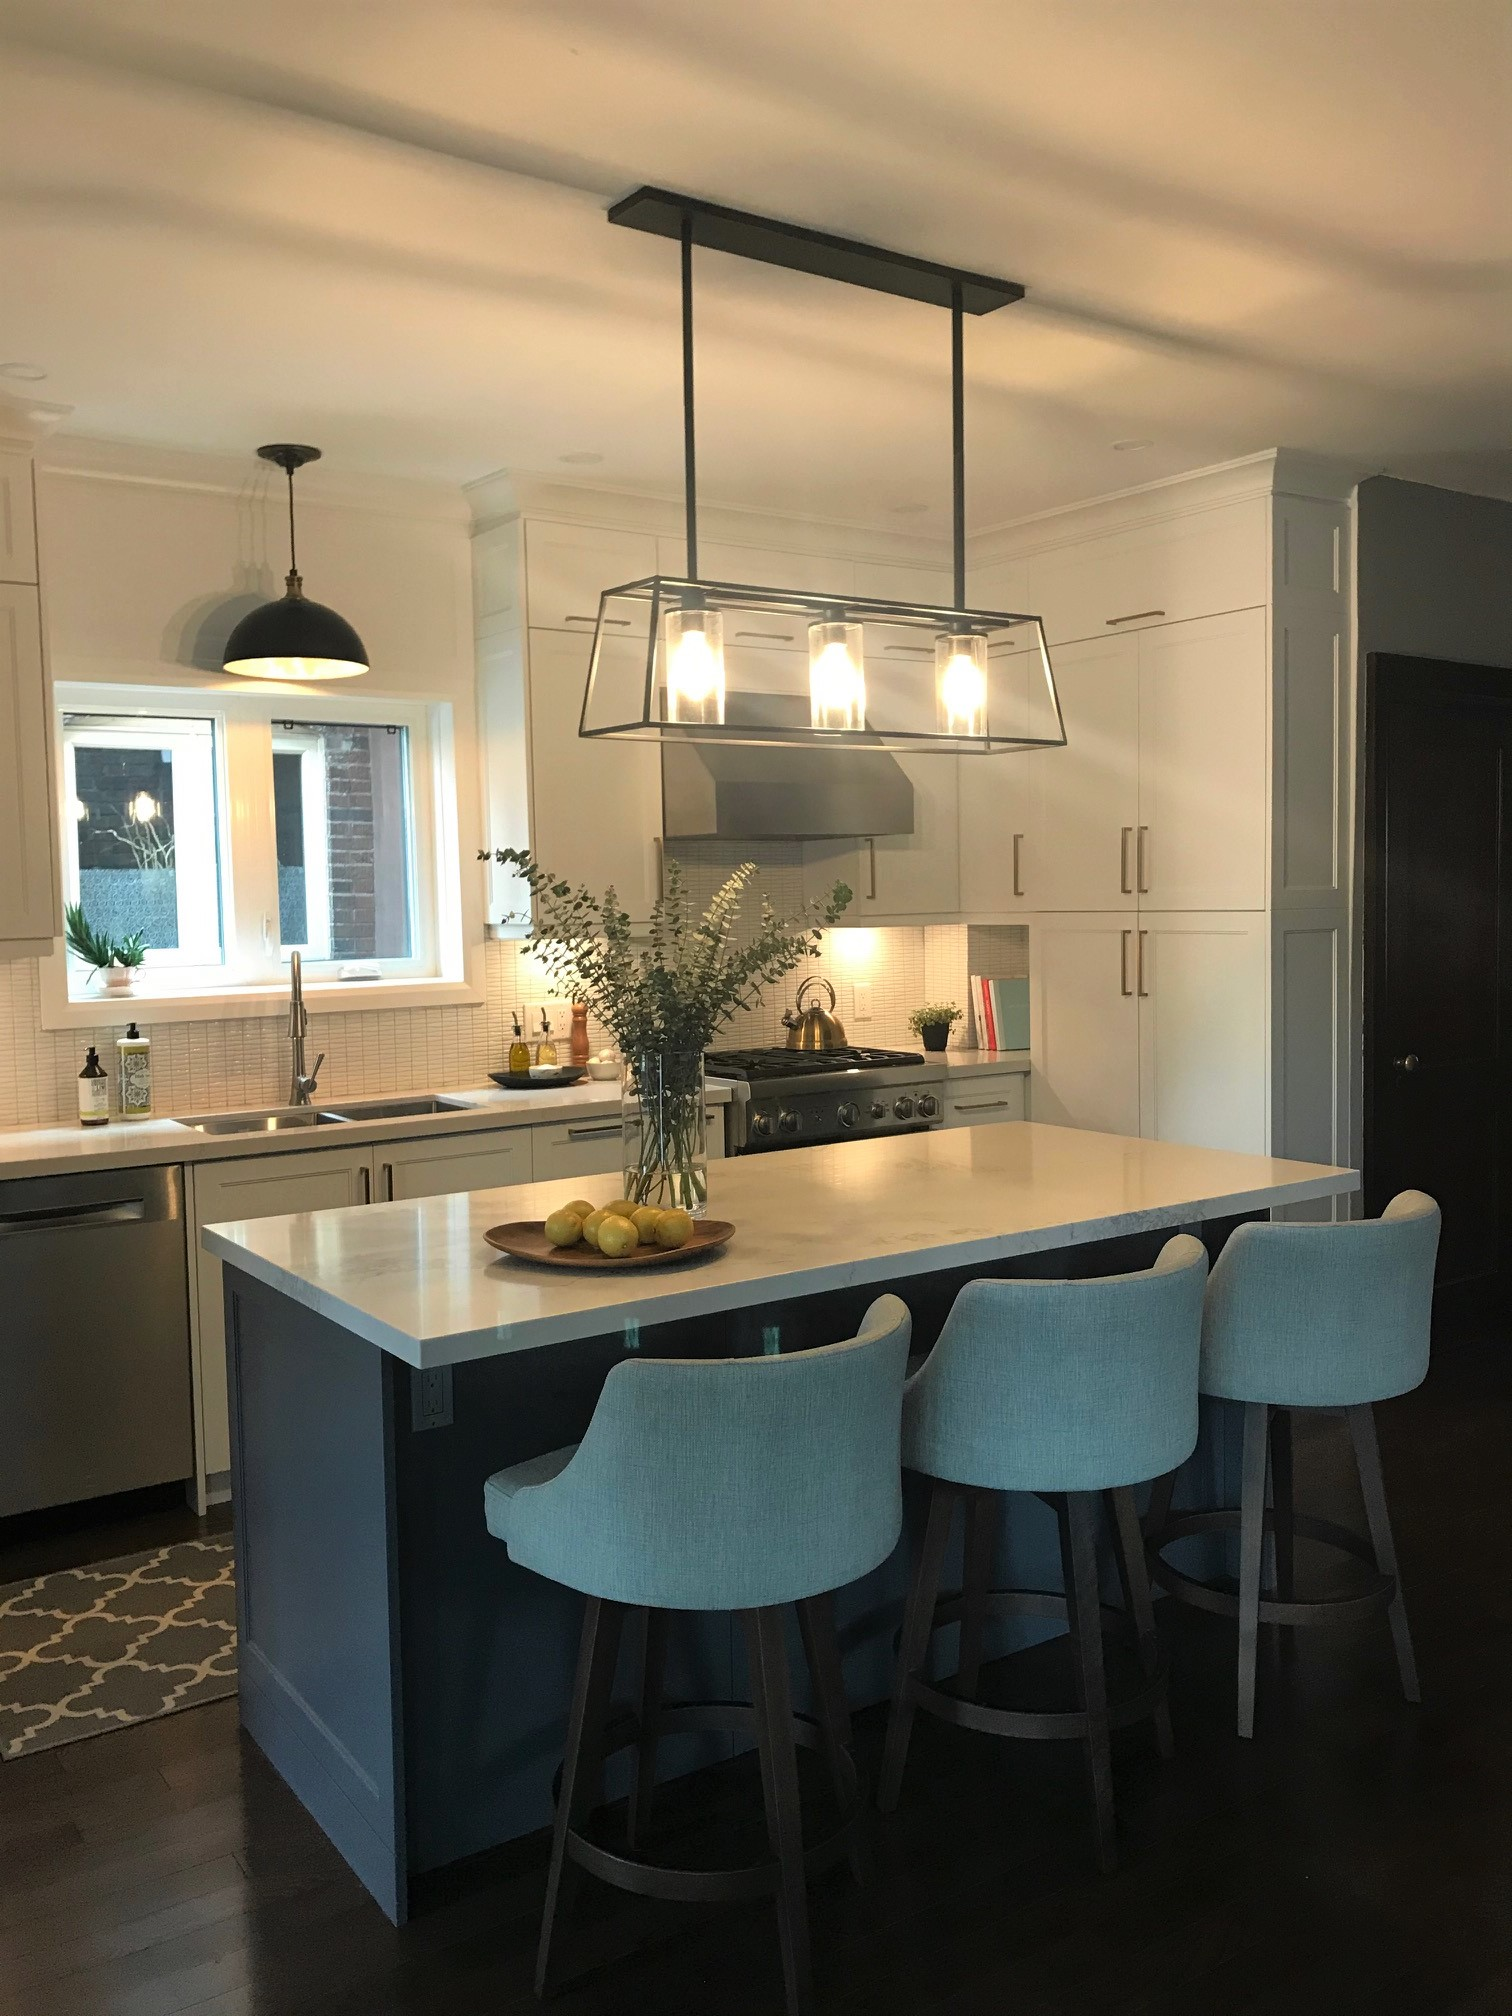 Home Front Redesigns Kennedy Avenue Project Kitchen Photo4